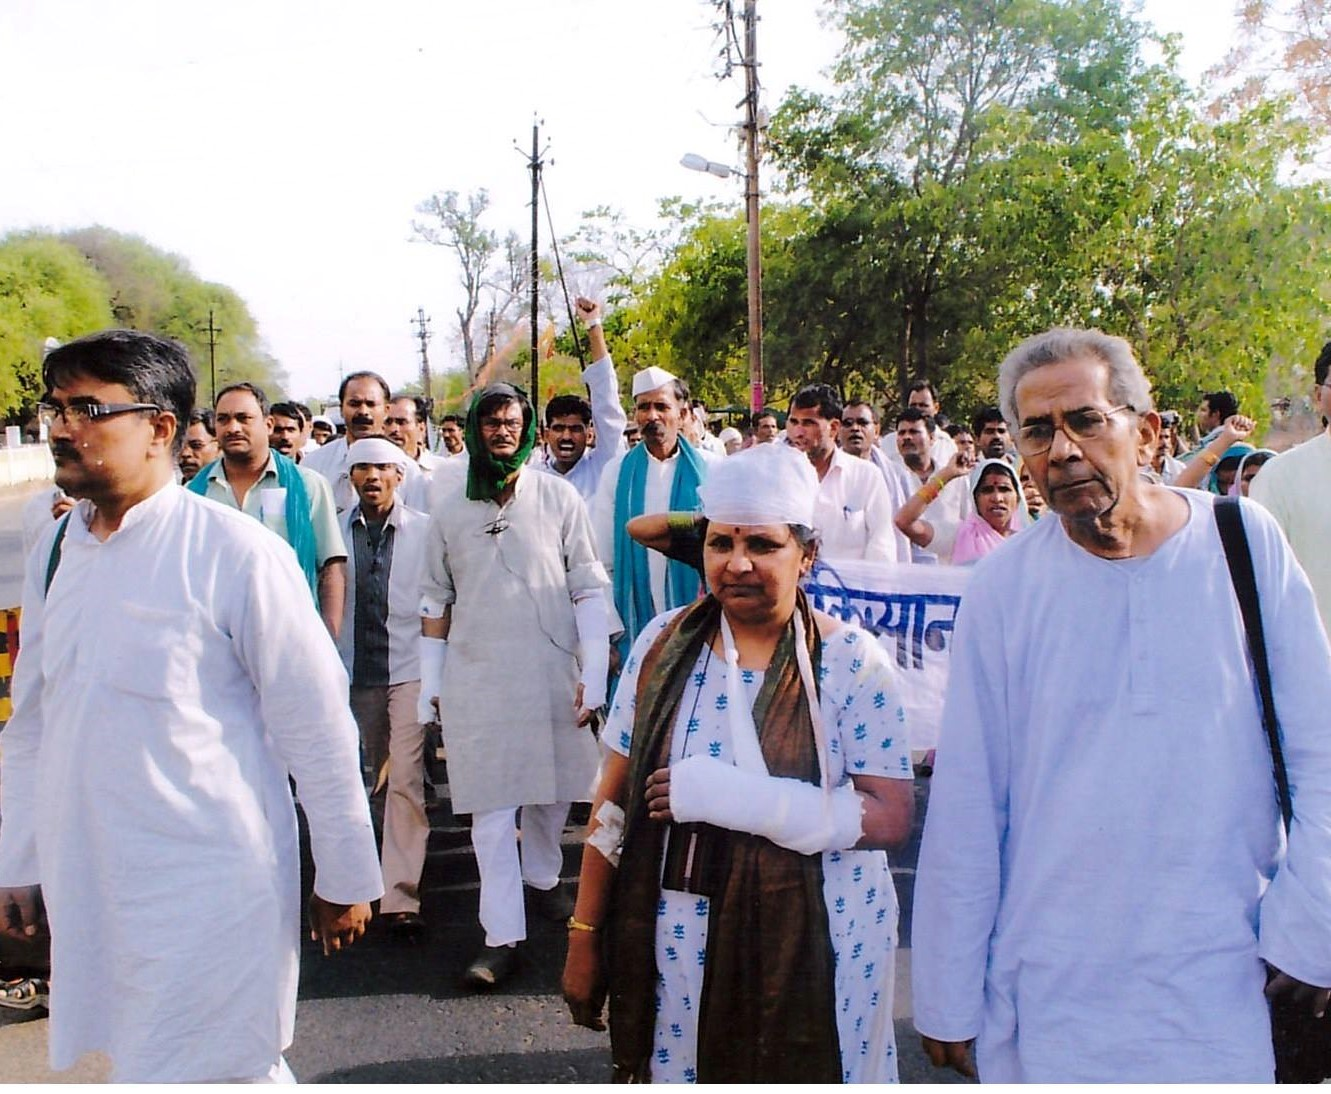 Villagers (including some injured by pro-Adani assailants) march in protest at Adani's proposed Pench power station near Chhindwara. Photo courtesy KSS